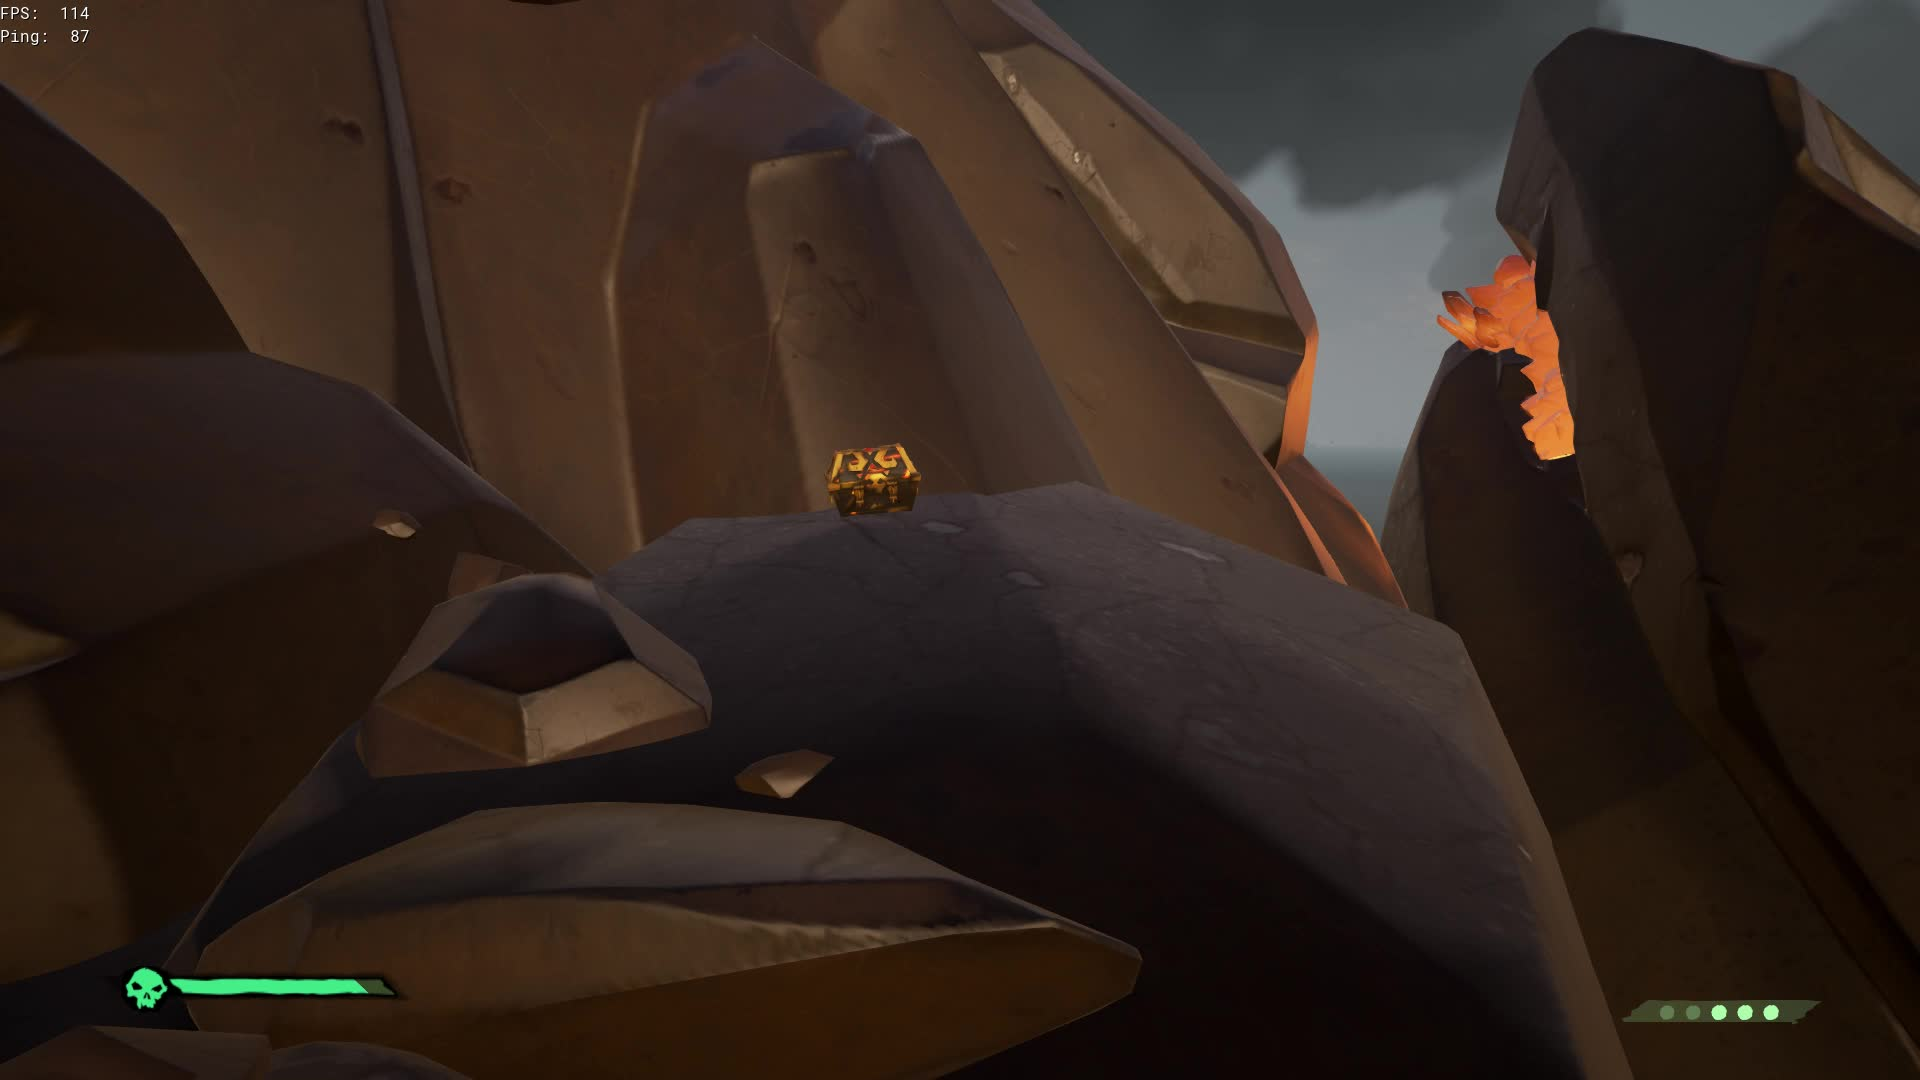 seaofthieves, vlc-record-2019-03-11-01h57m08s-Sea of Thieves 2019.03.11 - 01.53.14.02.mp4- GIFs